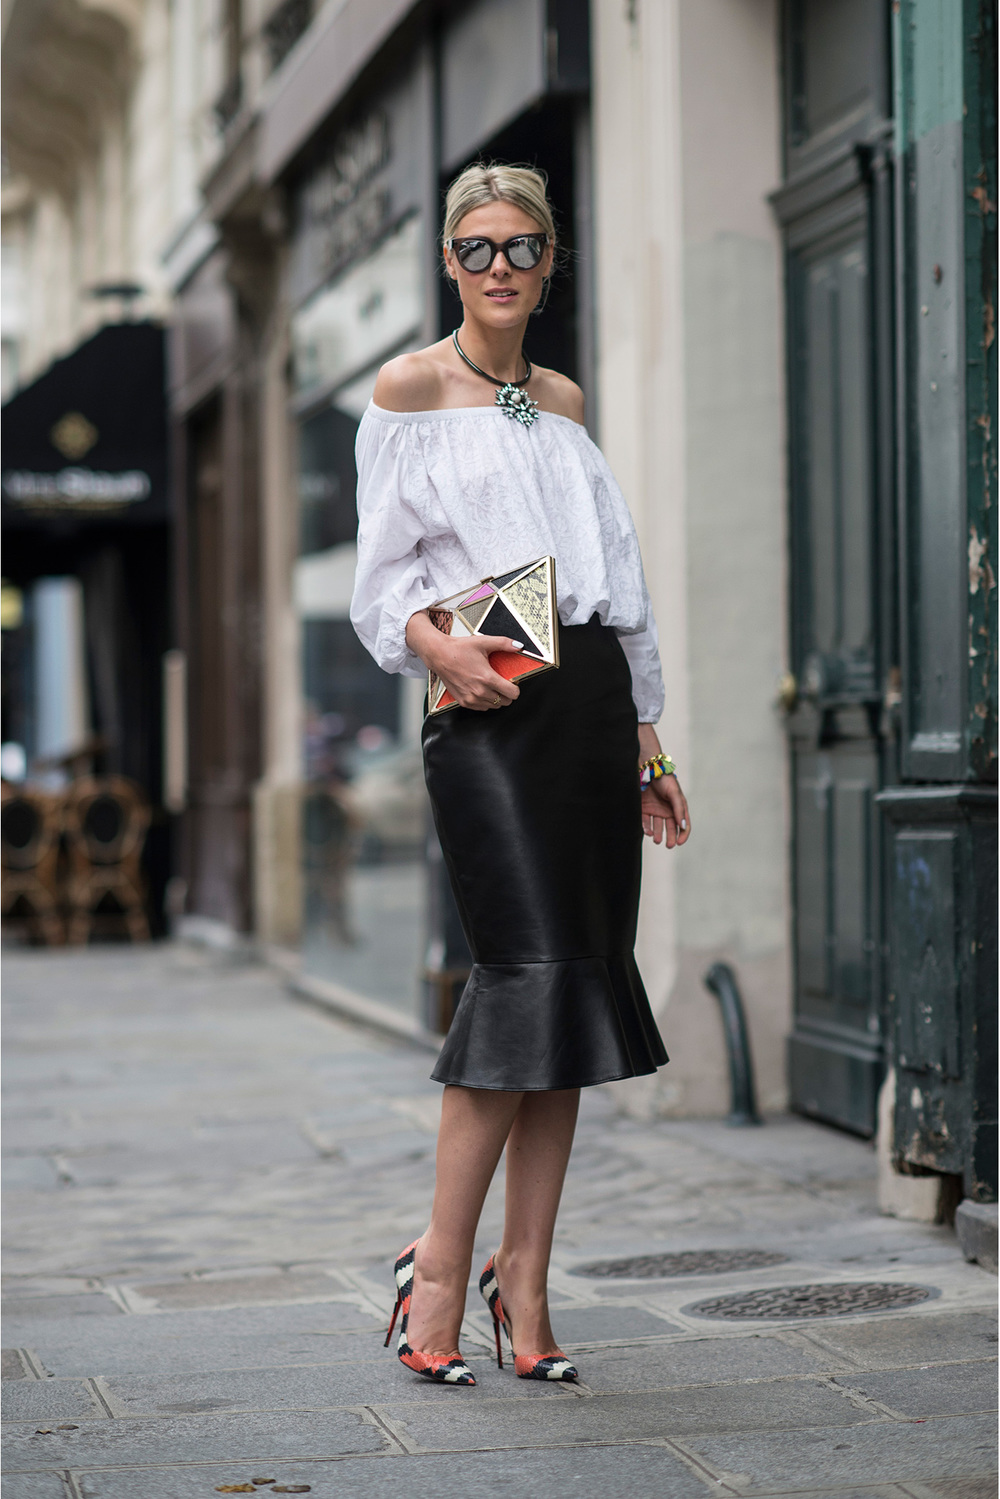 street-style-choker-necklaces-5.jpg